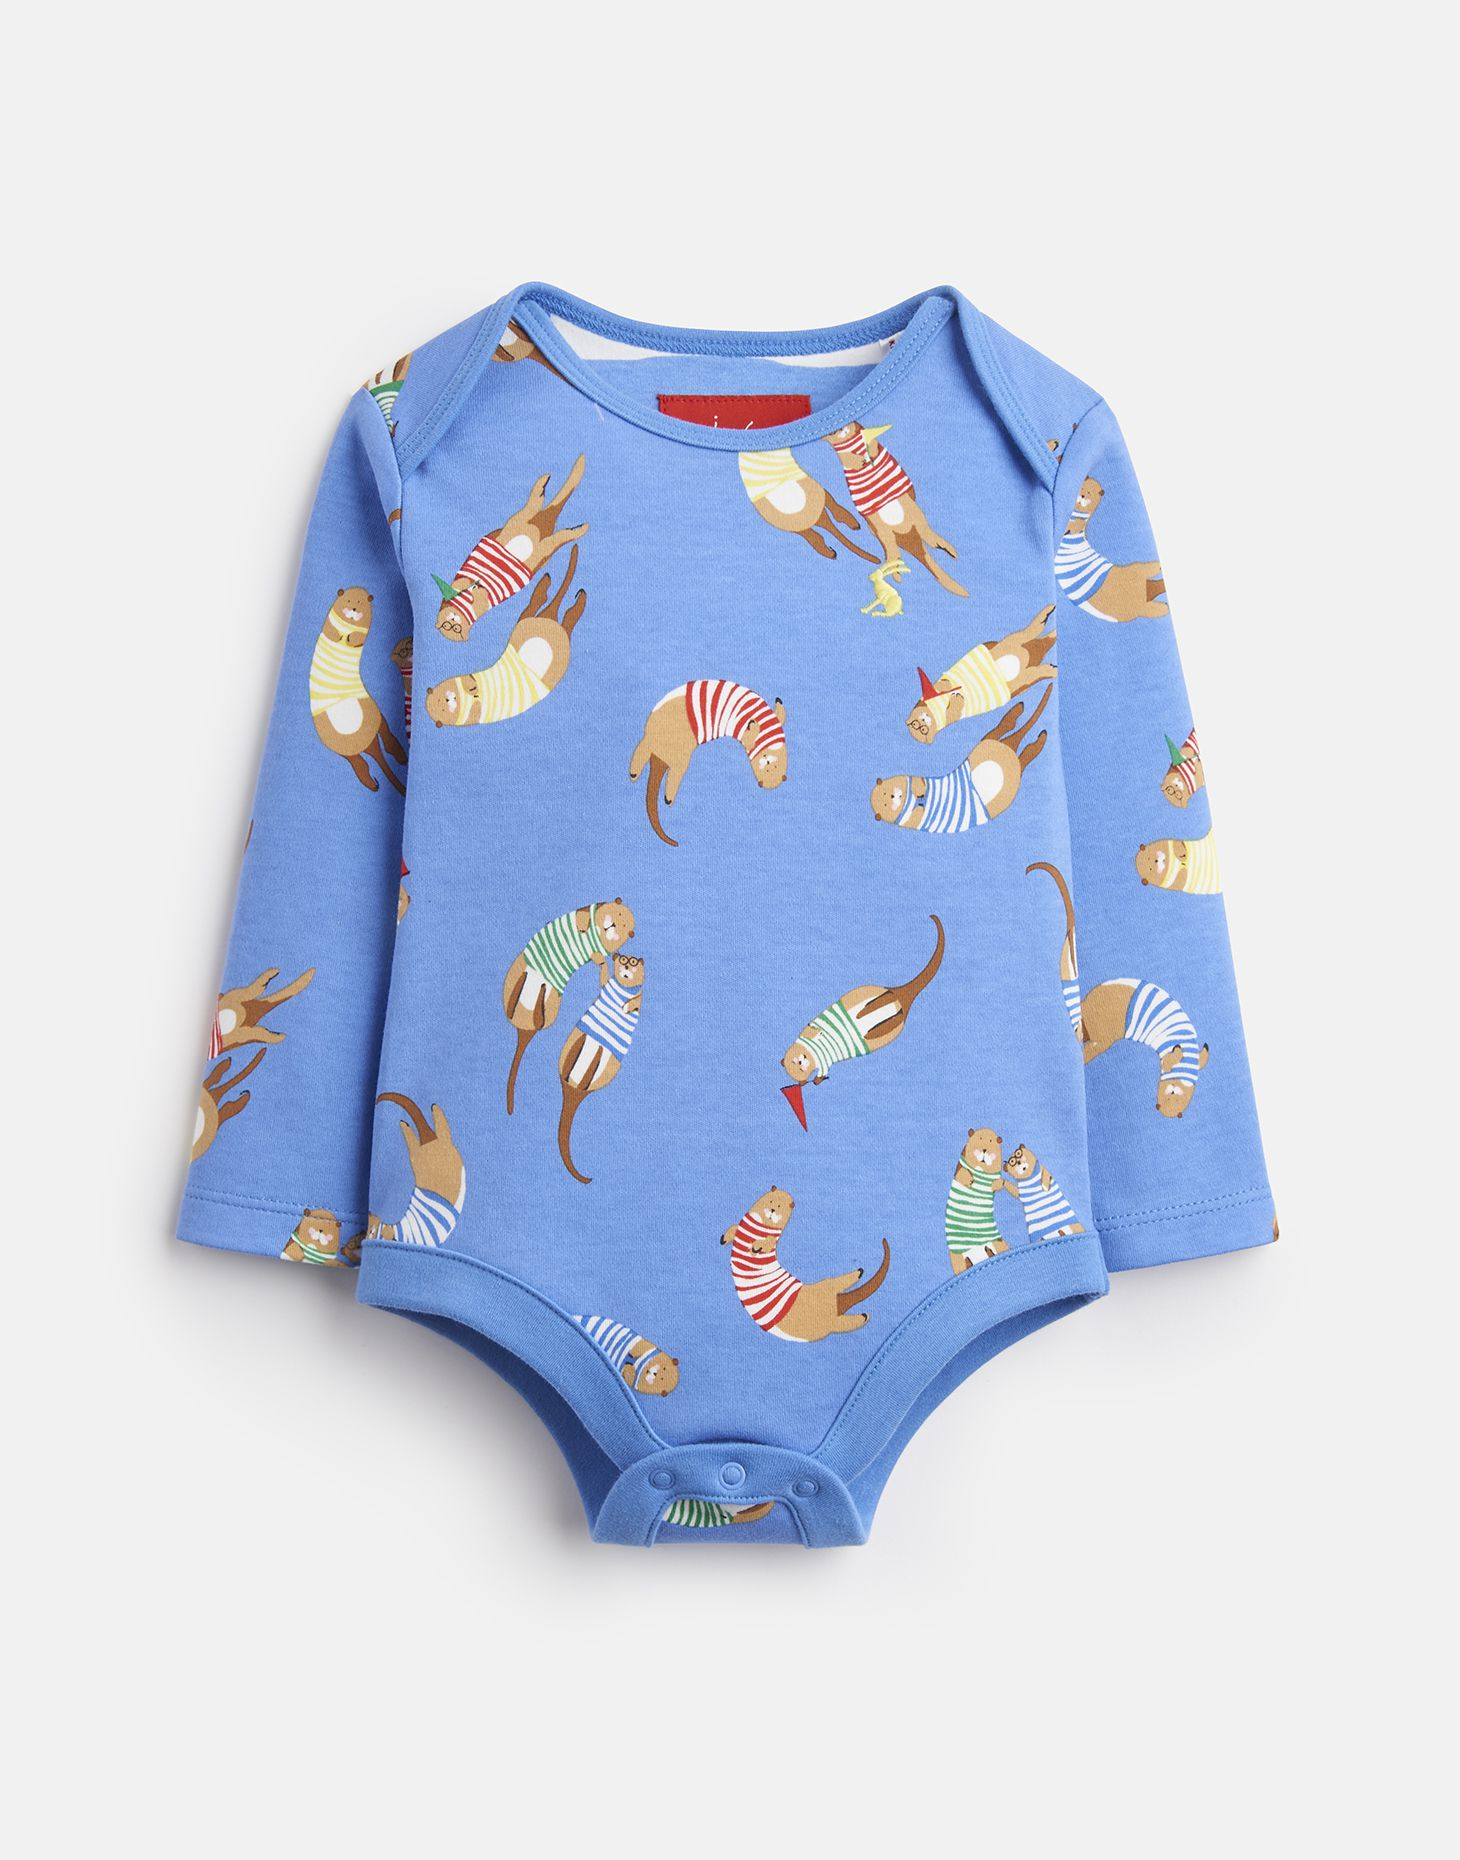 Joules Baby Snazzy Jersey Printed Bodysuit in SKY BLUE FLYING BEARS